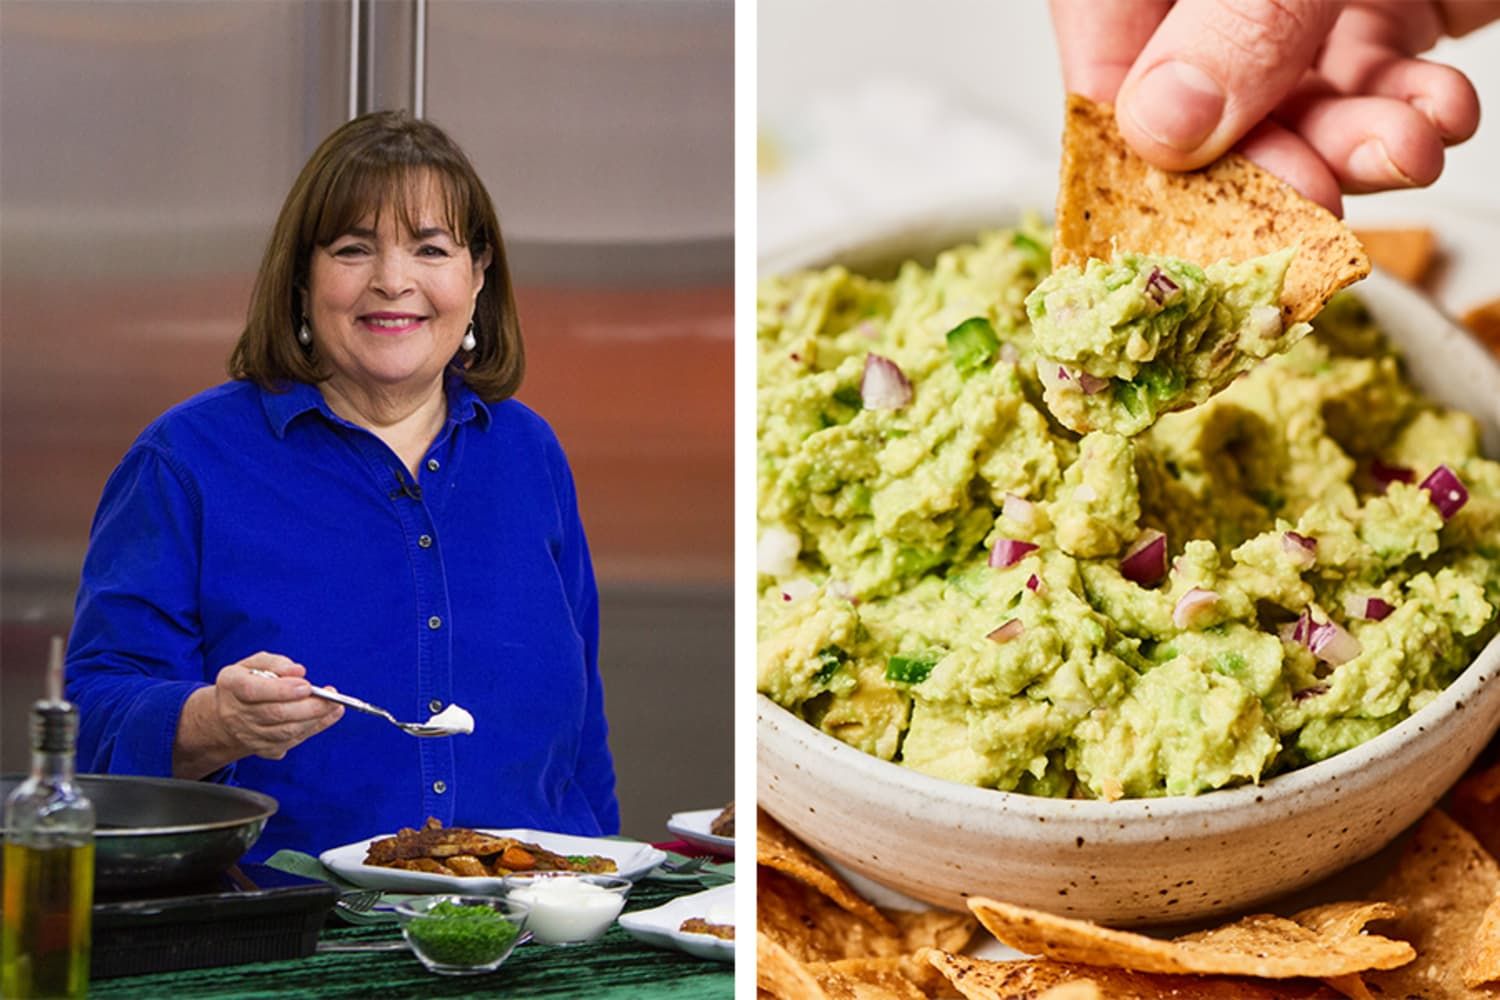 Today Is National Avocado Day! Here's 3 Great Recipes to Make from Ina Garten.